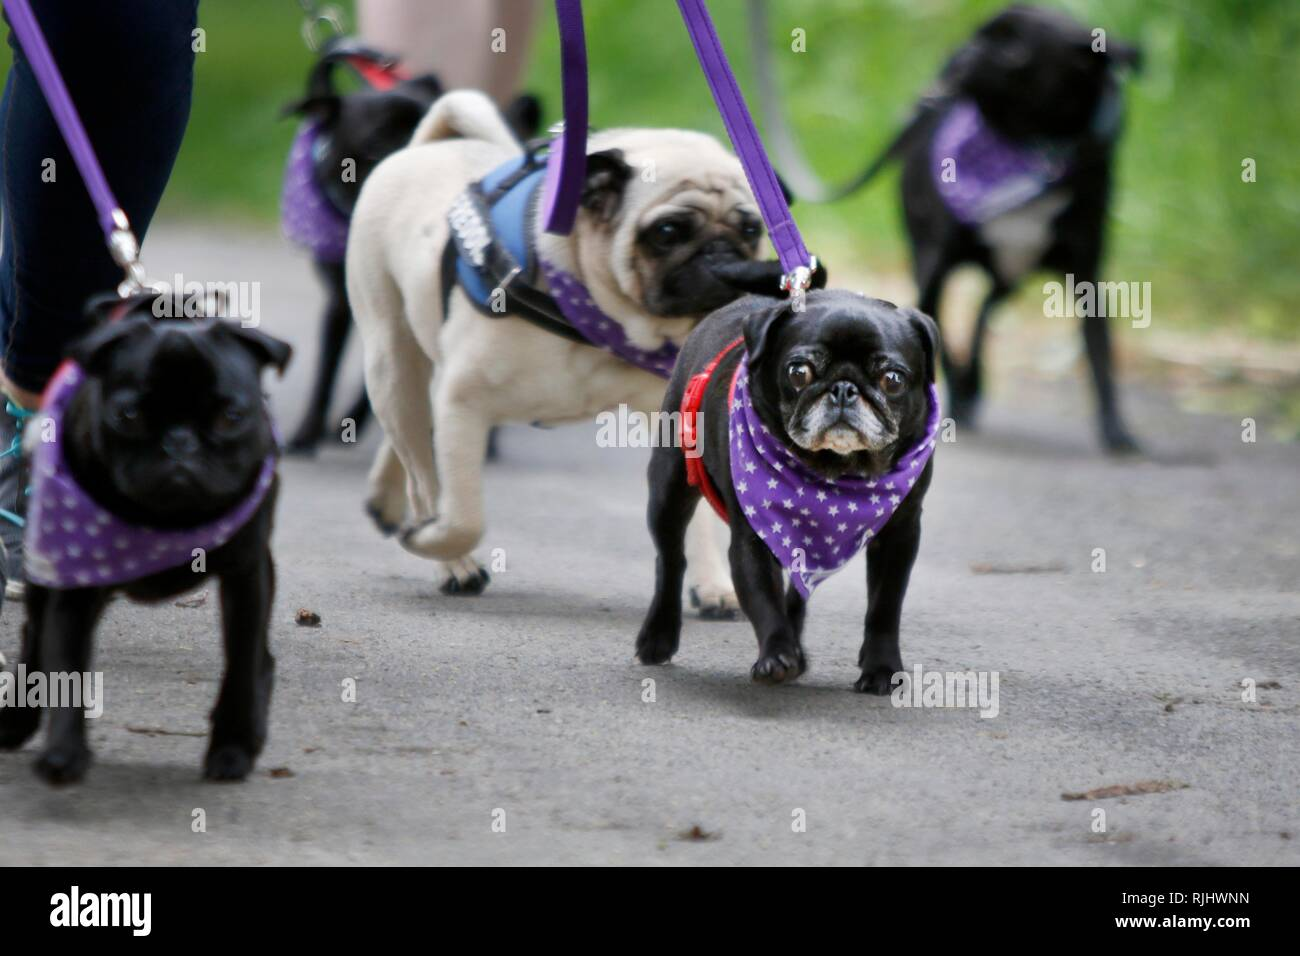 Lots of love for pugs as dozens of owners and their pugs join the Pug Walk in aid of the MuffinPug Rescue charity, held on the Colesbourne Estate, Glo - Stock Image